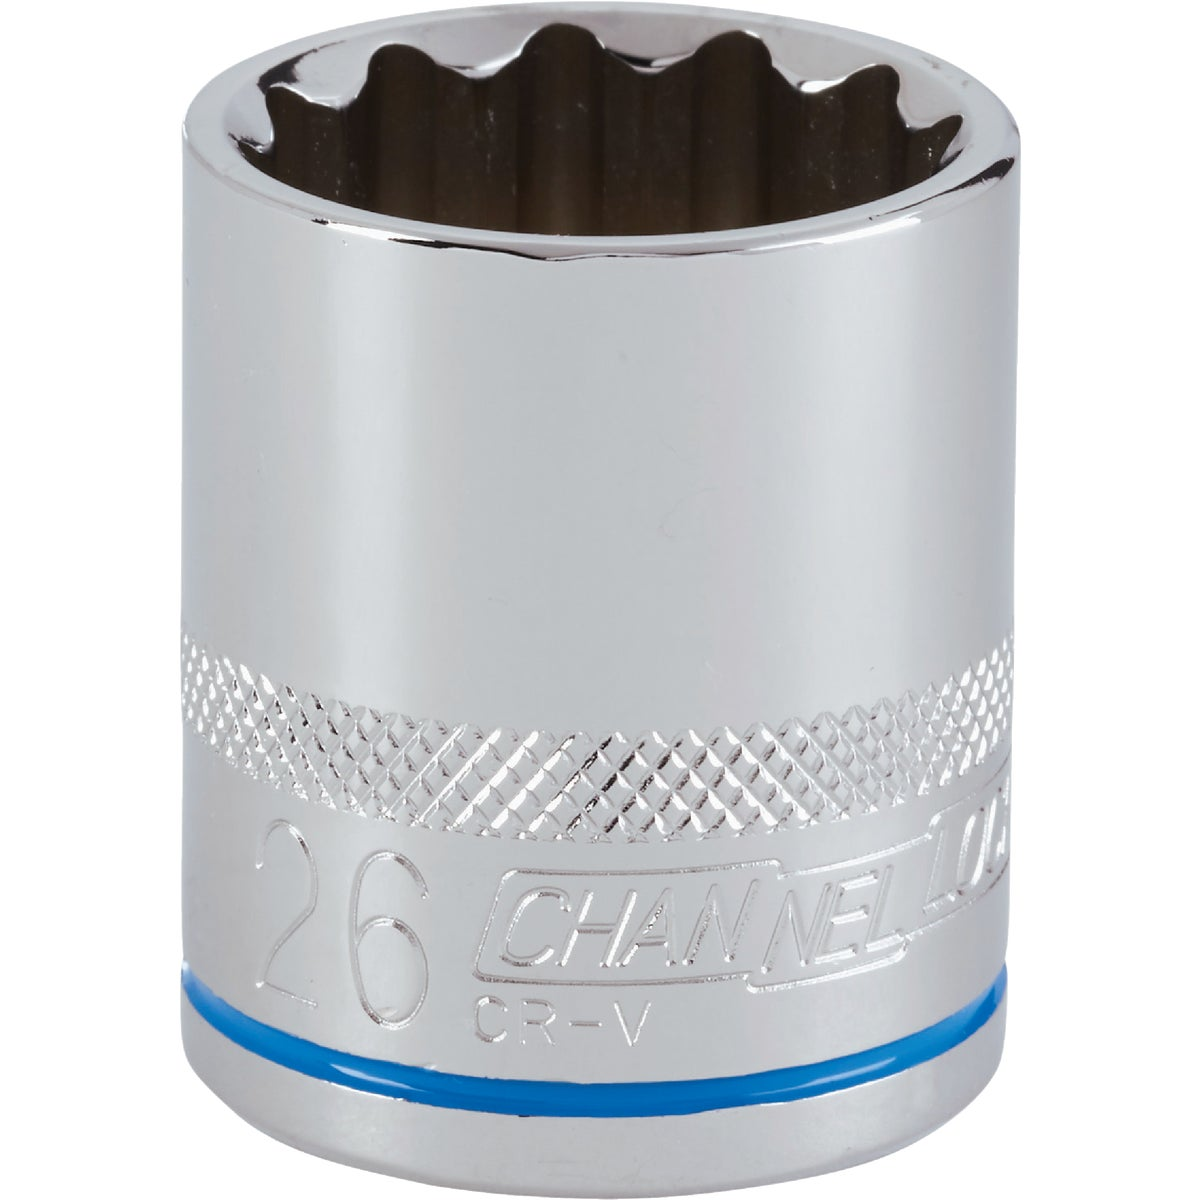 26MM 1/2 DRIVE SOCKET - 12726 by Apex Tool Group